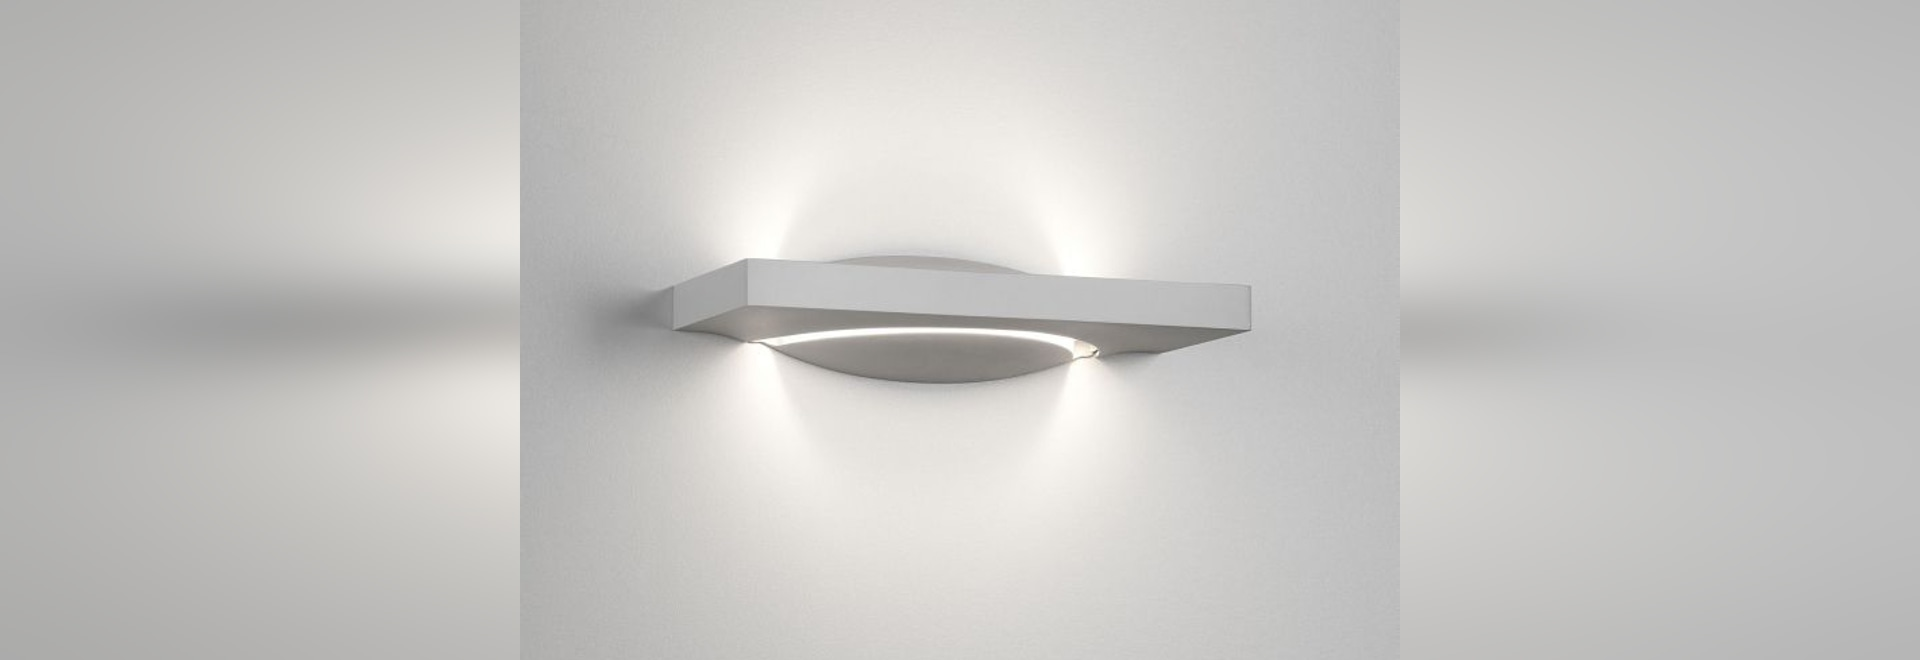 New pogo contemporary wall light by delta light delta light new pogo contemporary wall light by delta light mozeypictures Images